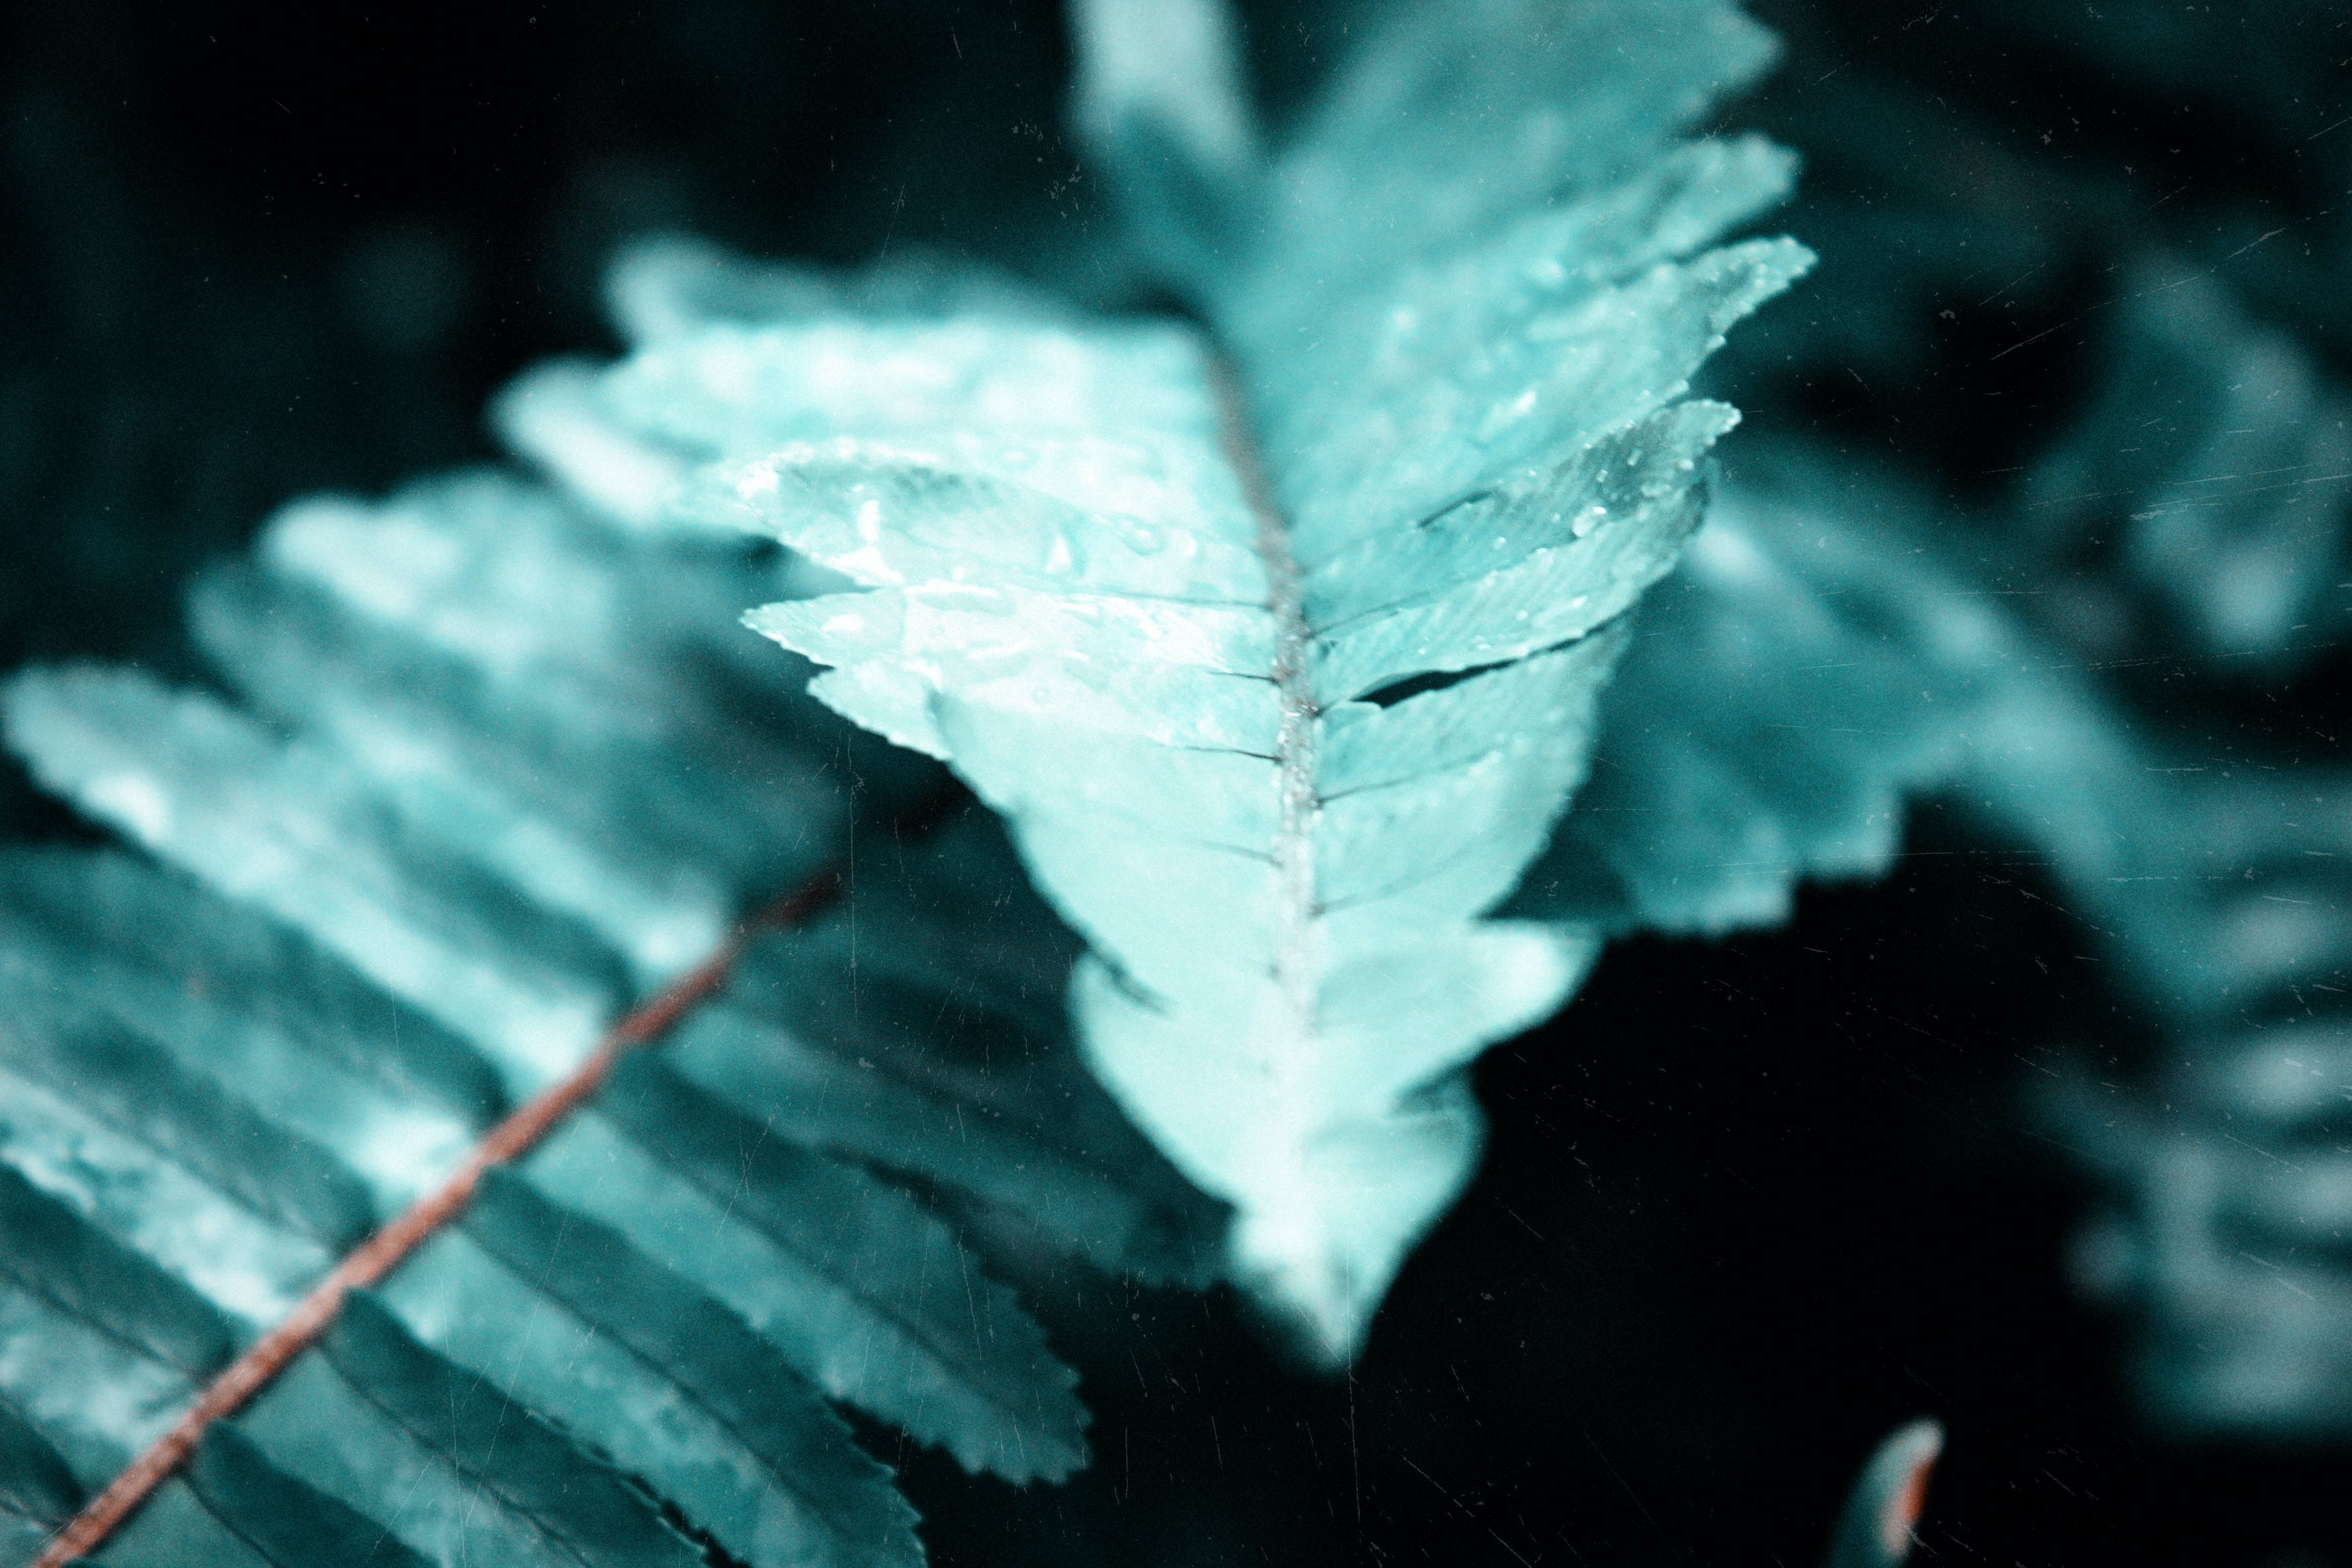 Macro Photography Of Fern Leaves